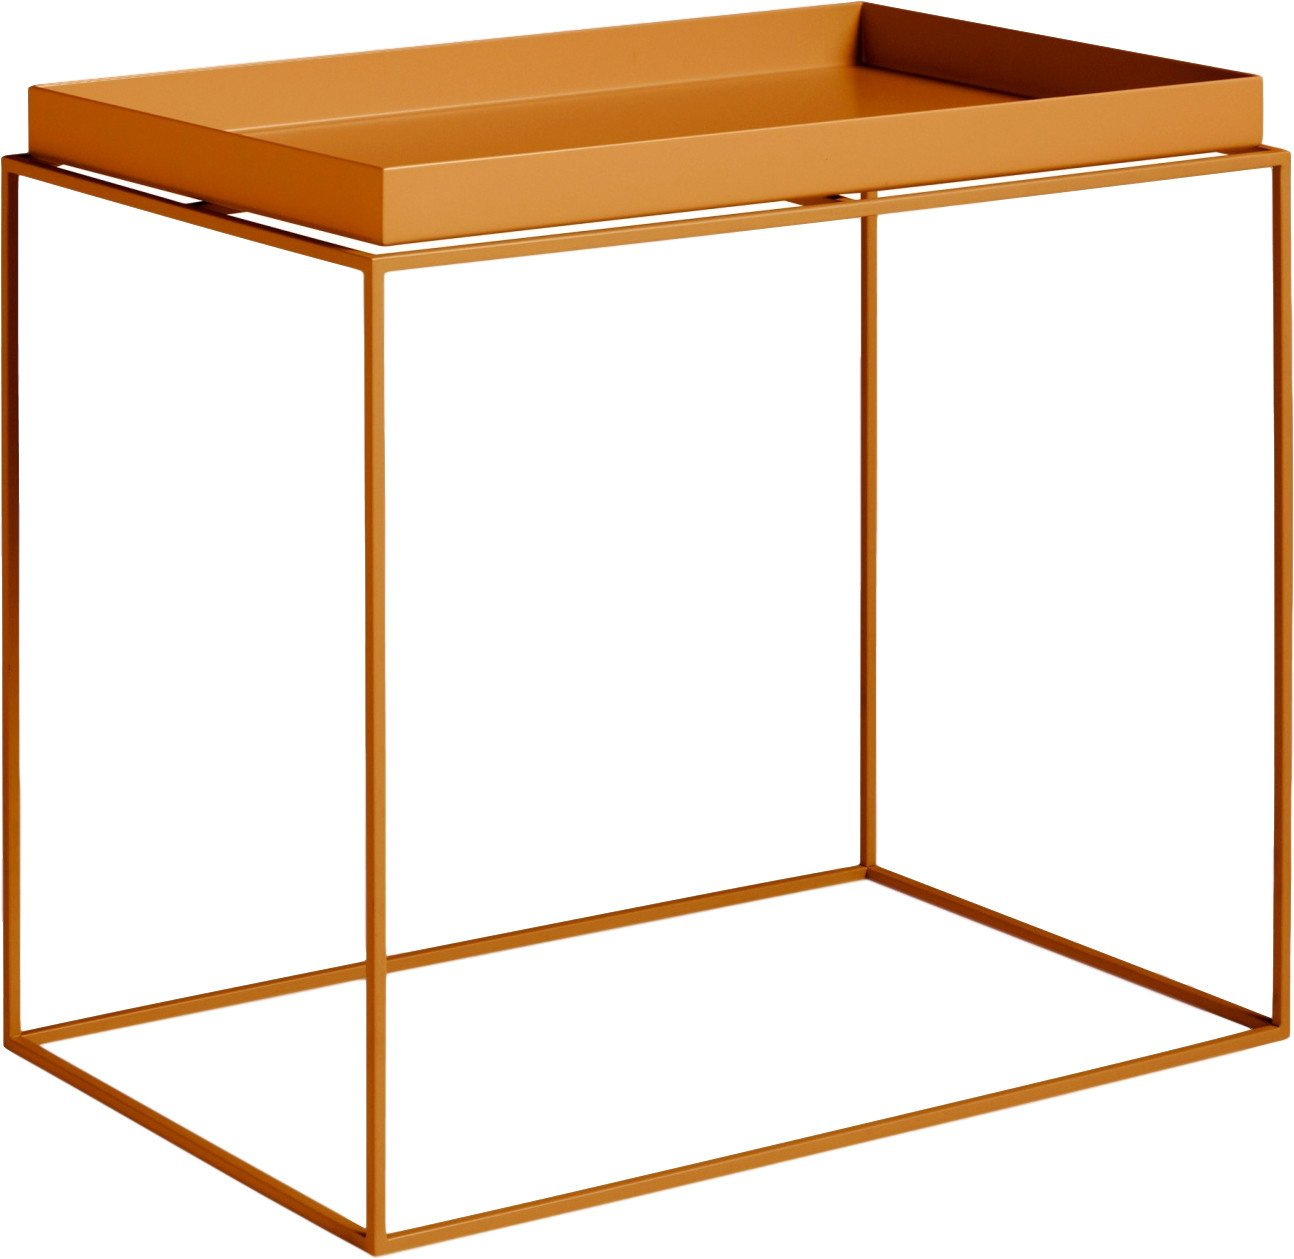 Tray Side Table L Toffee, HAY